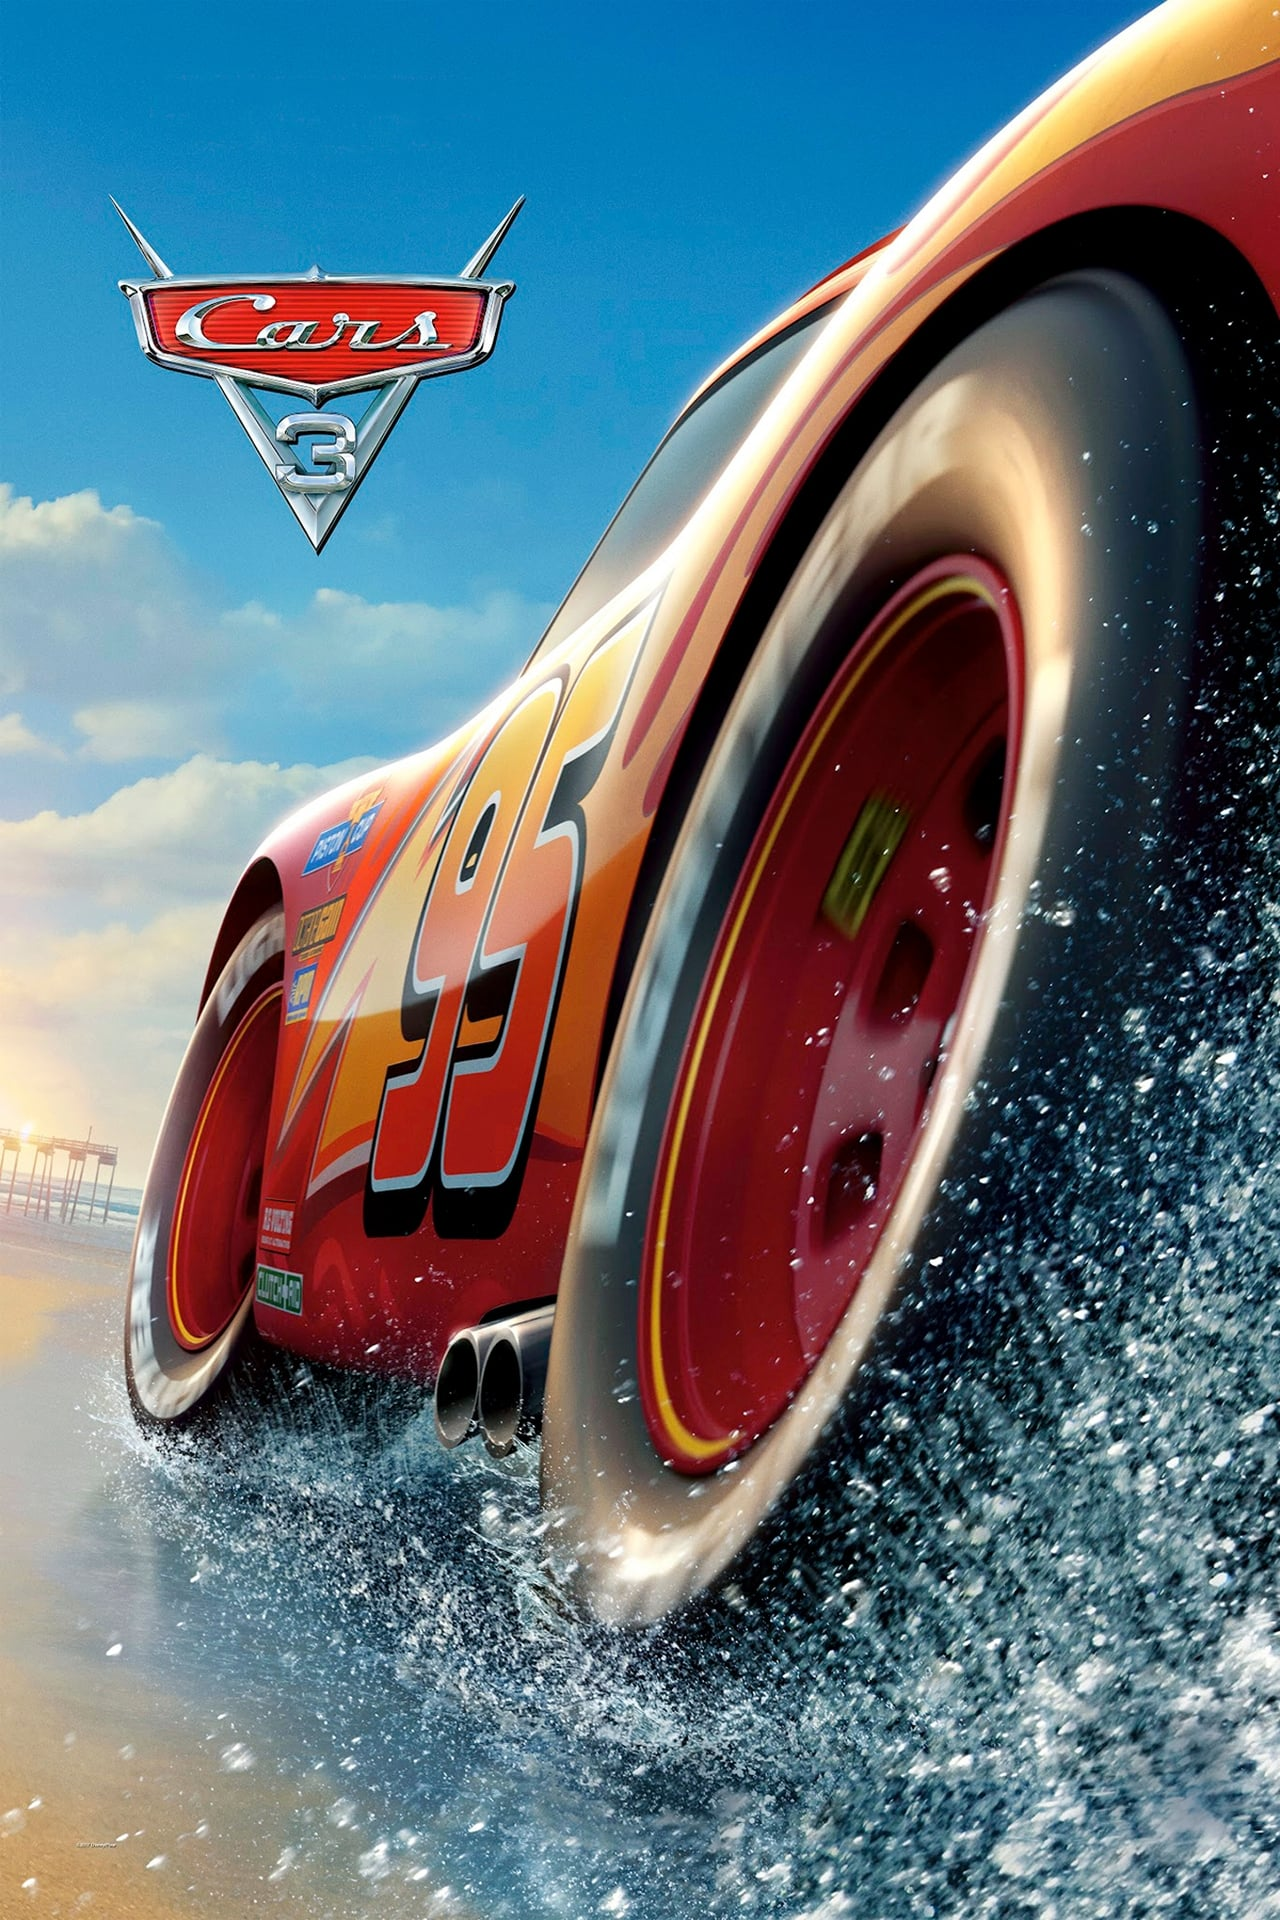 streaming cars 3 2017 online free putlocker the bloglocal